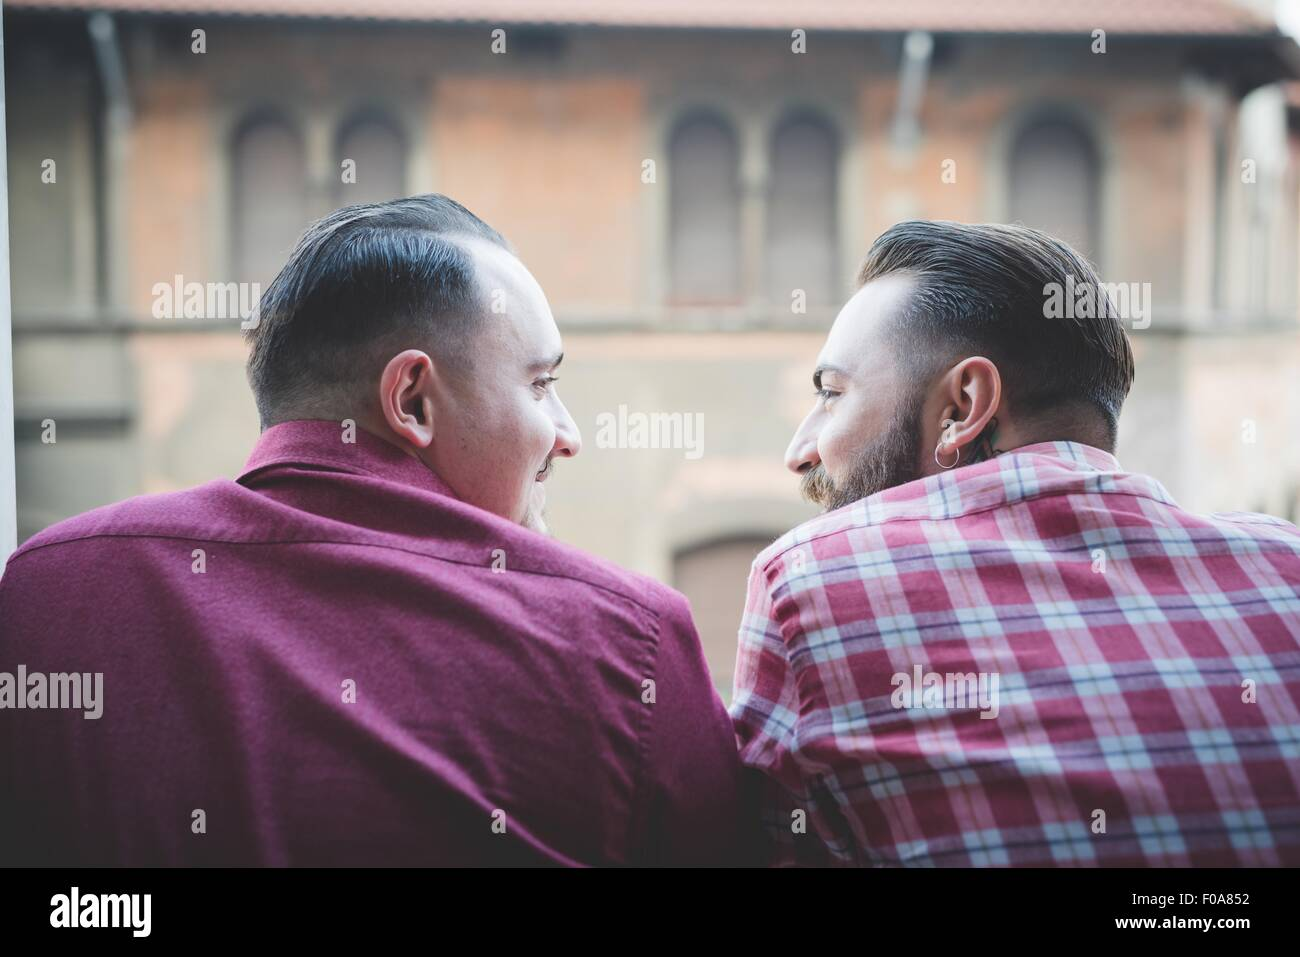 Gay couple looking out of window - Stock Image